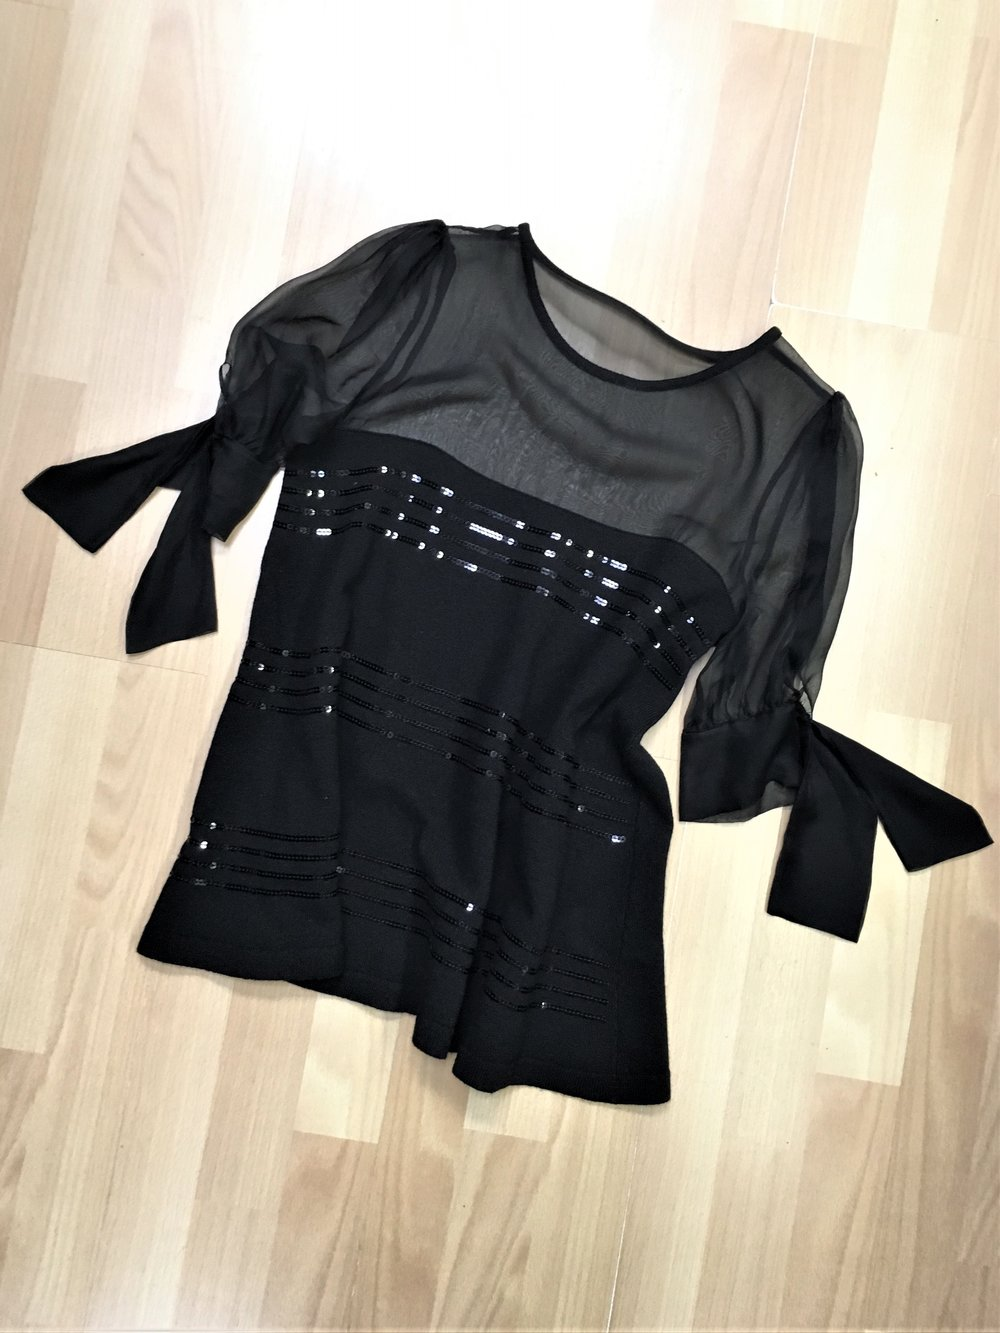 VALENTINO - Black wool blend sweater with sequin detail and sheer sleeves. Size small, $88.00